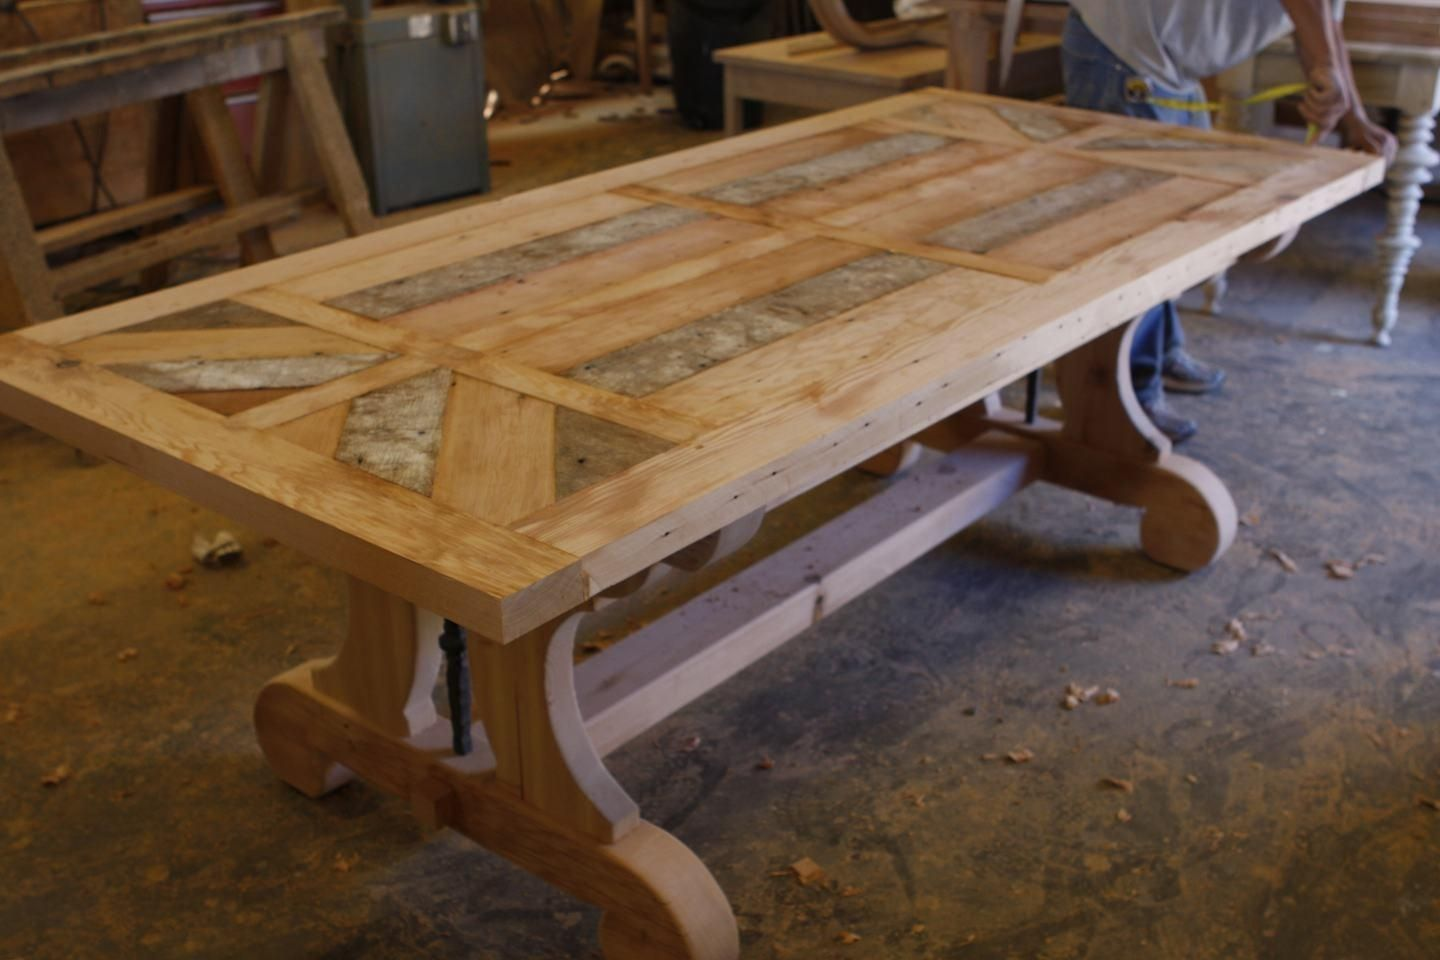 Custom Trestle Dining Table With Leaf Extensions Built In Reclaimed Wood - Custom Trestle Dining Table With Leaf Extensions Built In